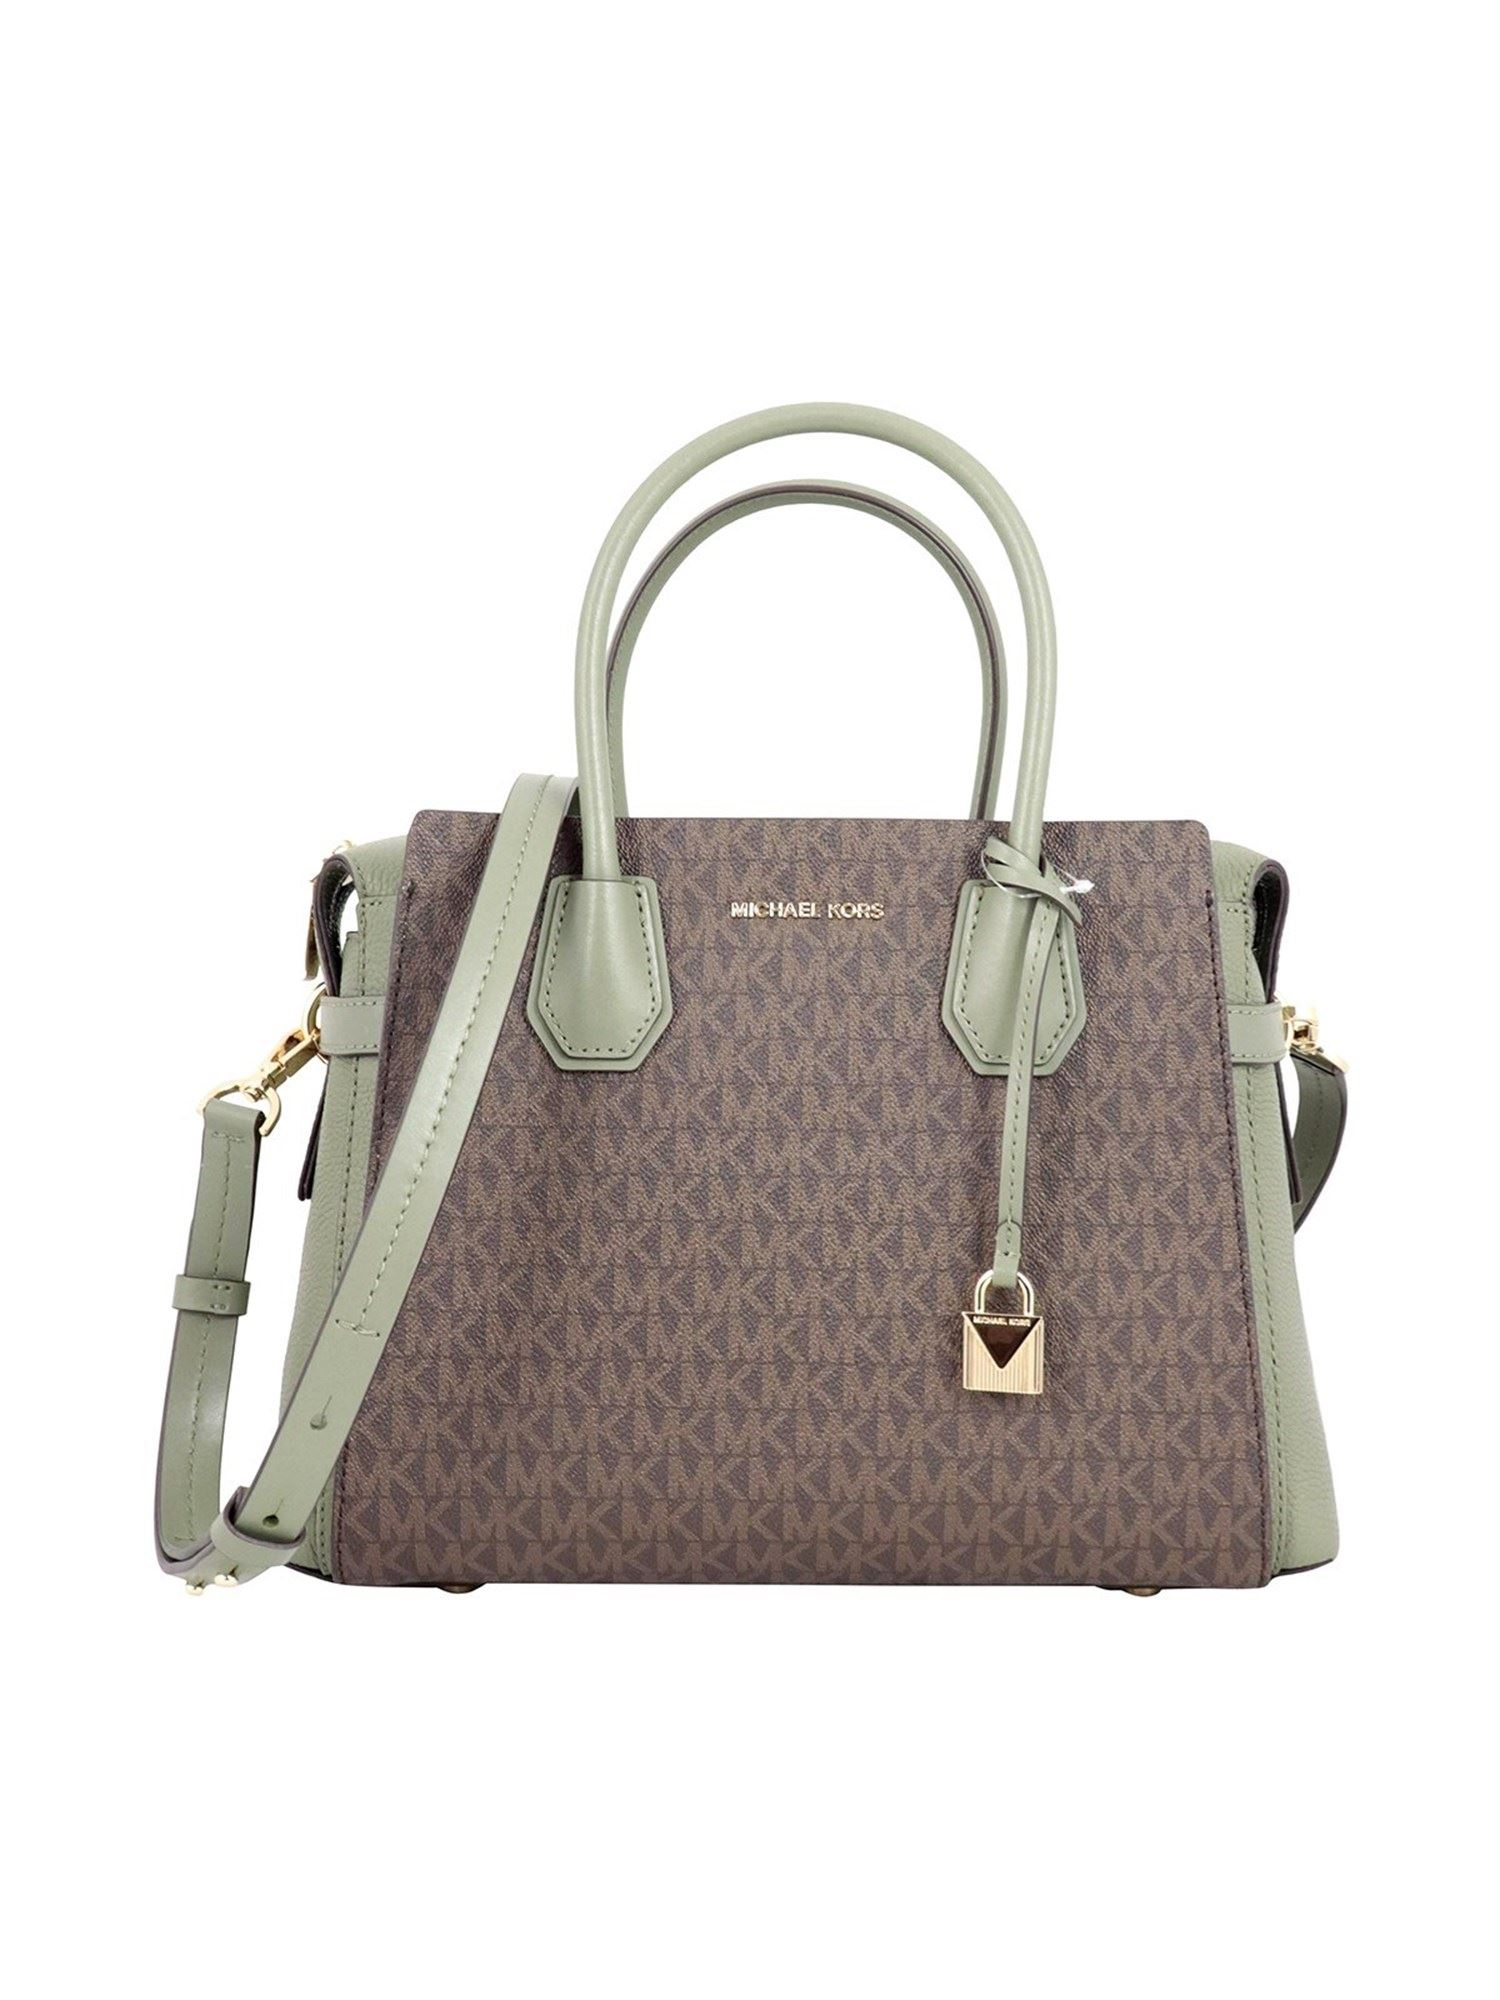 Michael Kors MERCER MEDIUM BOWLING BAG IN GREEN